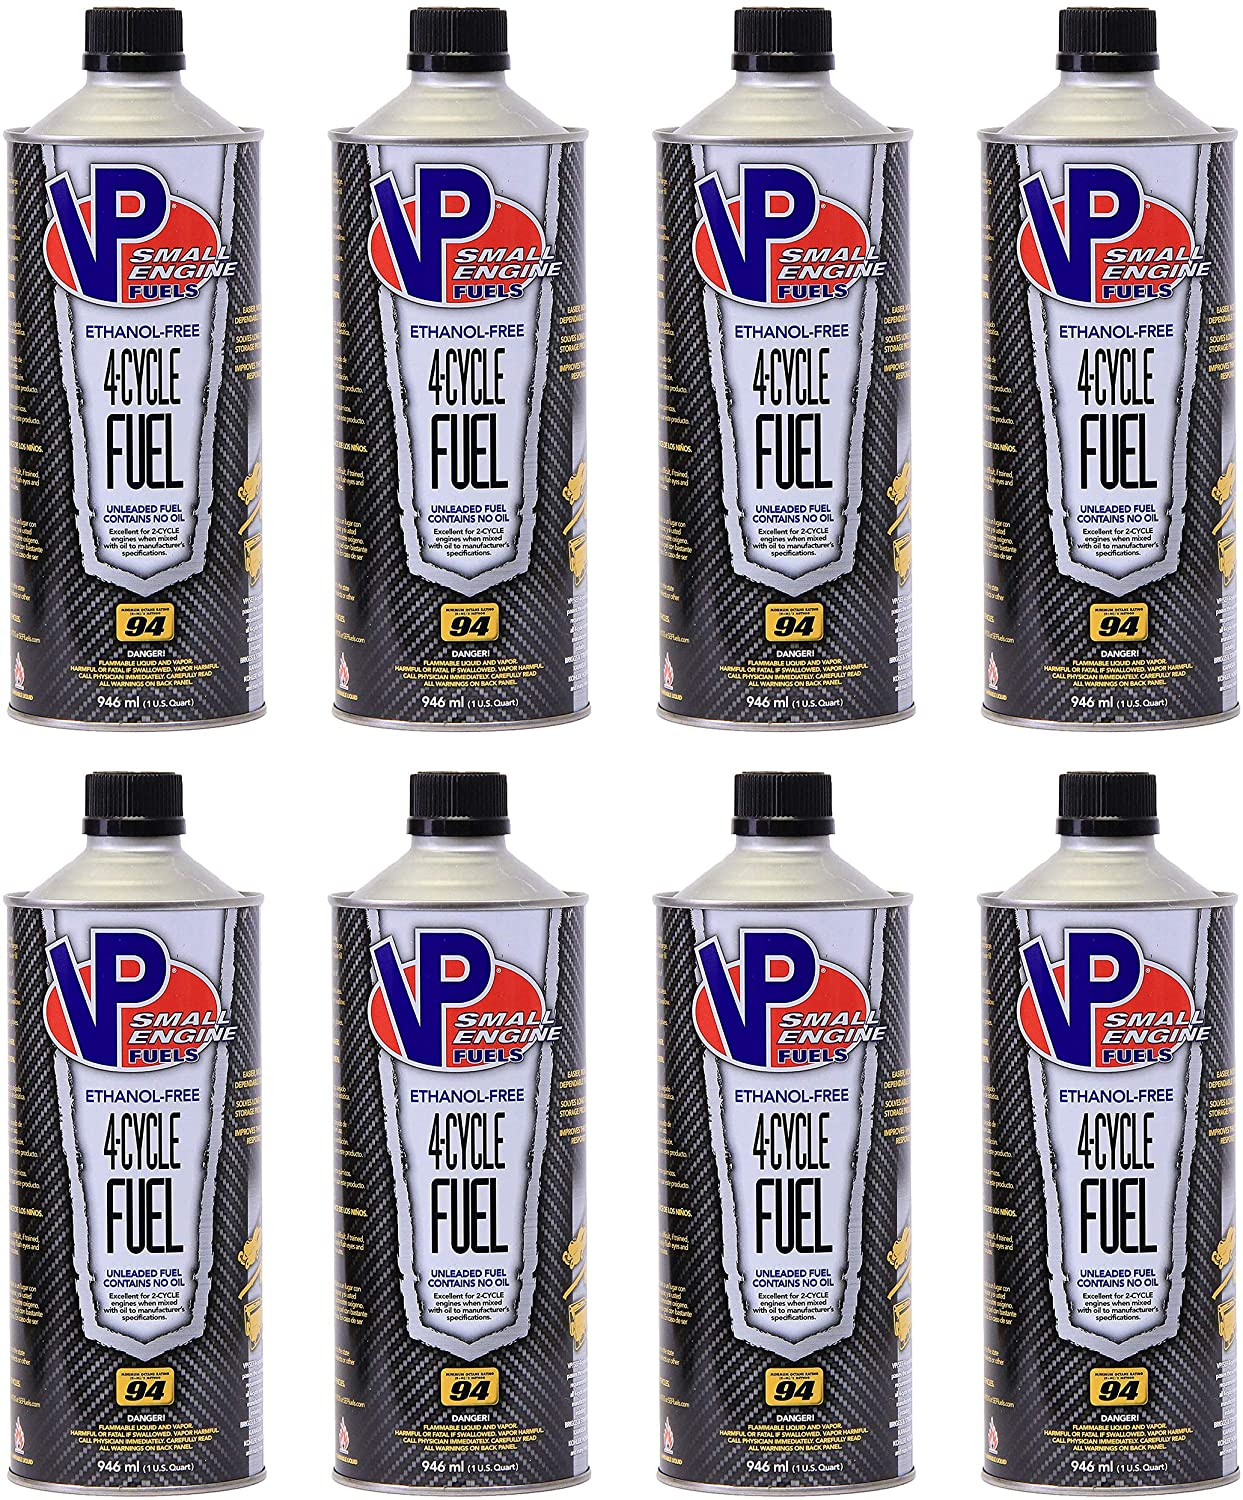 VP Small Engine Fuels 6208 Ethanol-Free 4-Cycle Fuel - Case of 8 (32oz)